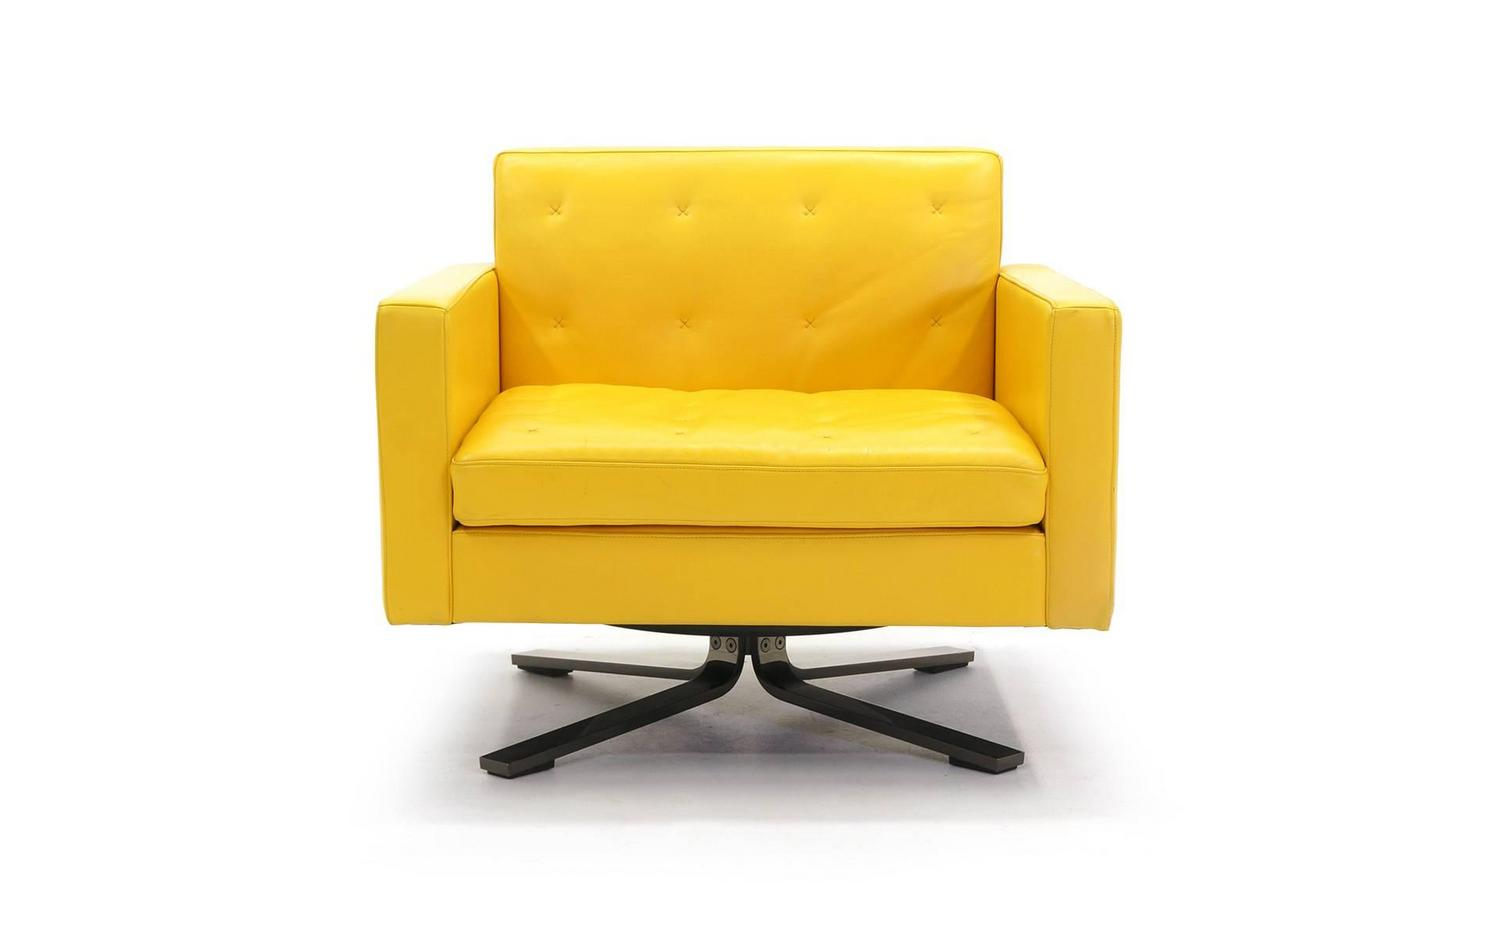 Poltrona Frau Kennedee Series Yellow Leather Memory Swivel Lounge Chair at 1s